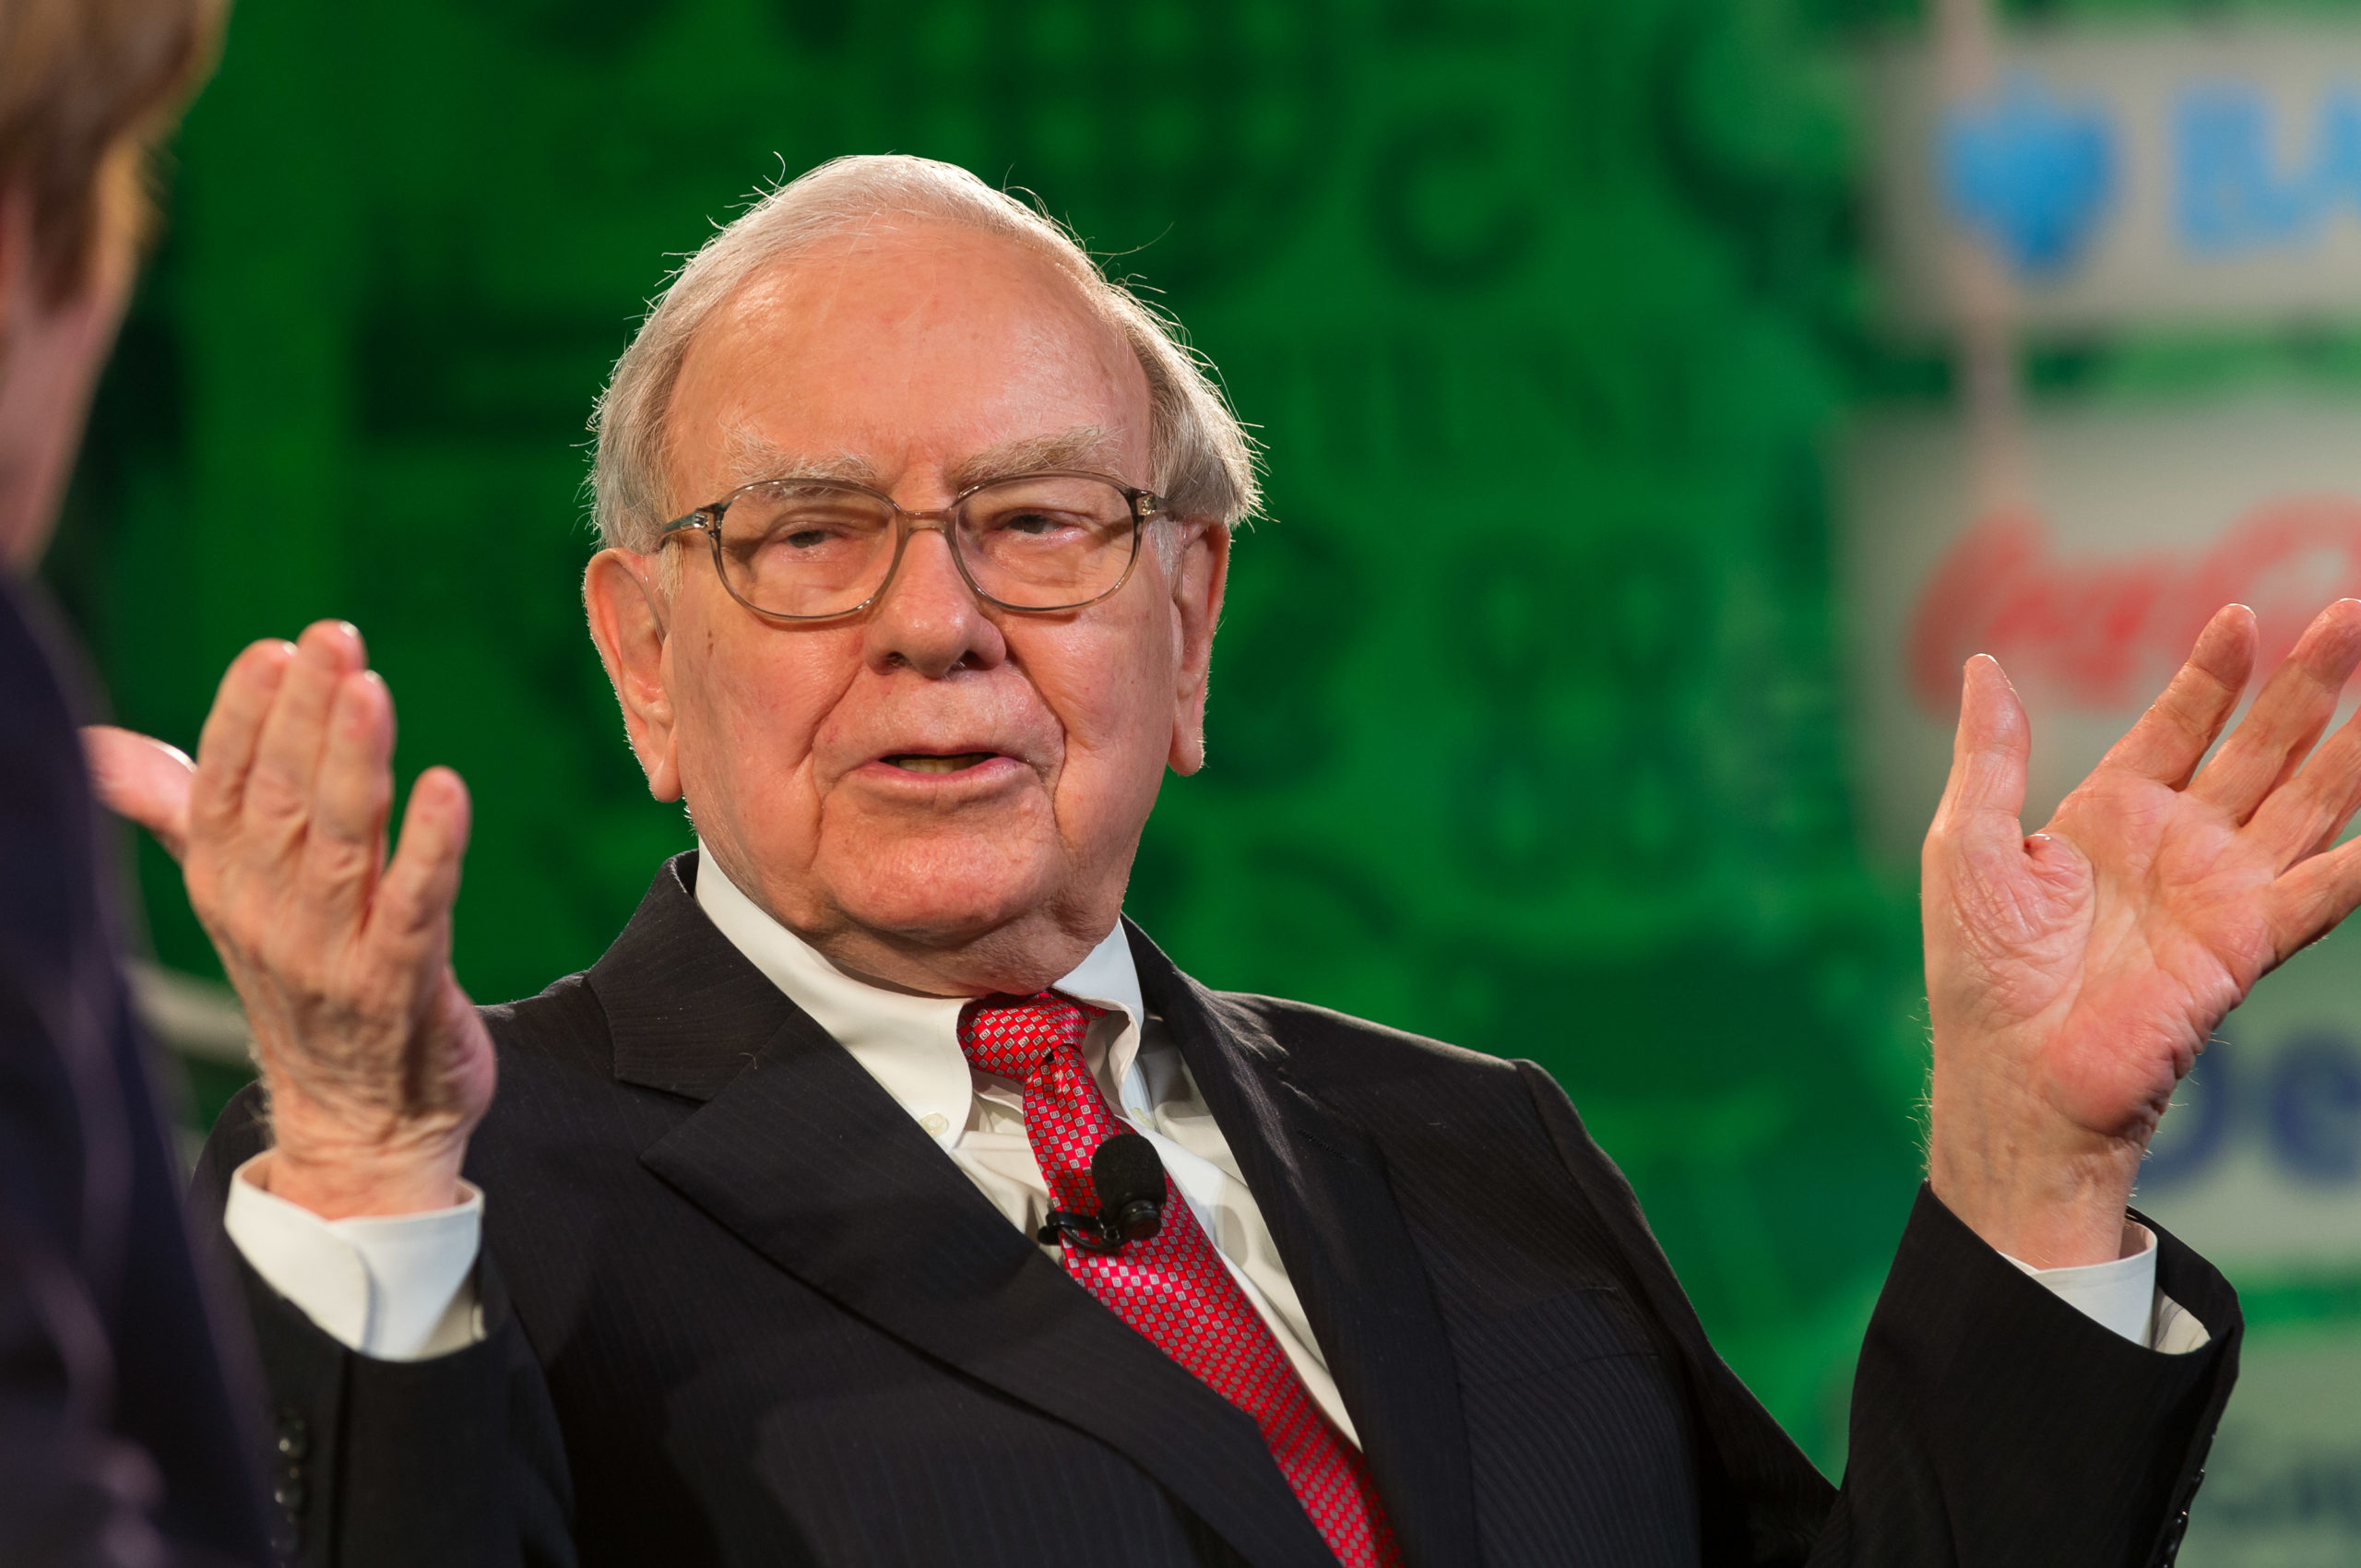 Berkshire Hathaway CEO Warren Buffett addressed the impact of renewable-energy resources on established utilities in his latest letter to shareholders. Image: Fortune Live Media / Flickr